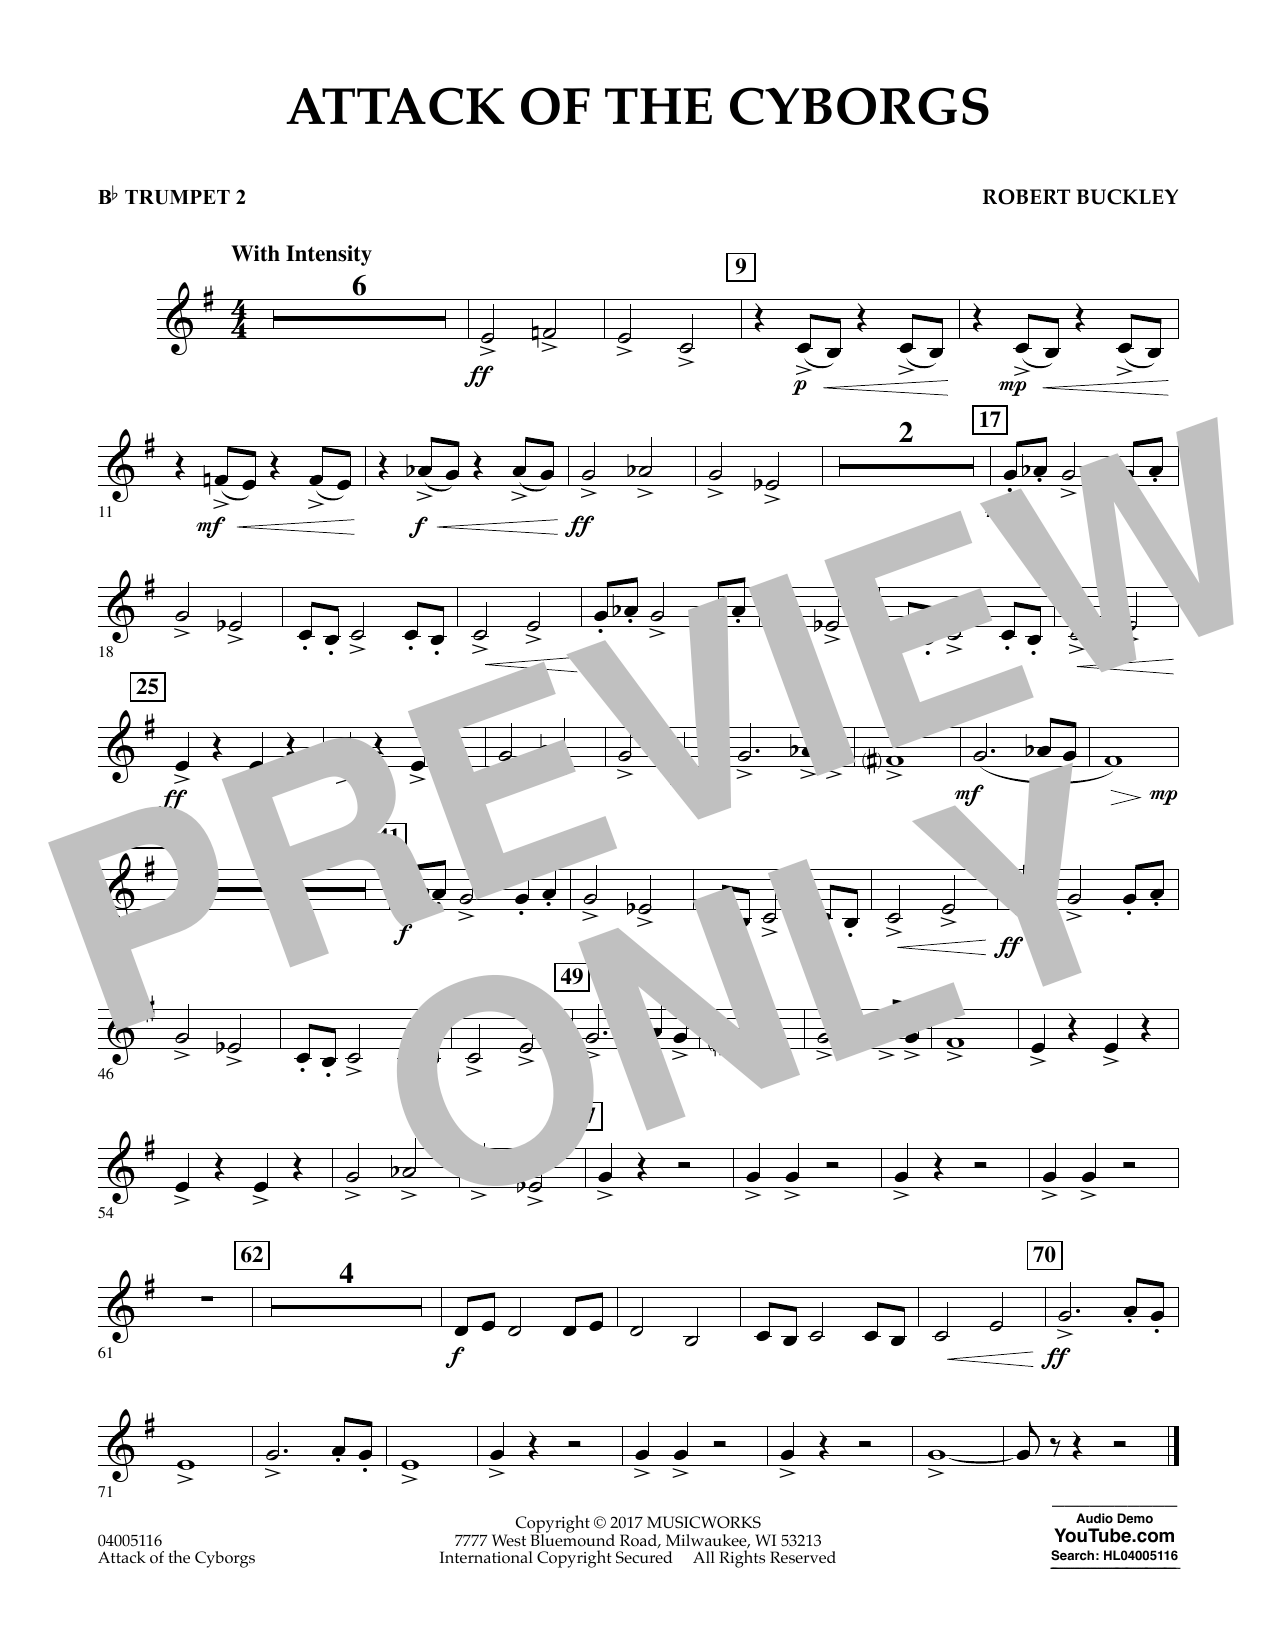 Robert Buckley Attack of the Cyborgs - Bb Trumpet 2 sheet music notes and chords. Download Printable PDF.